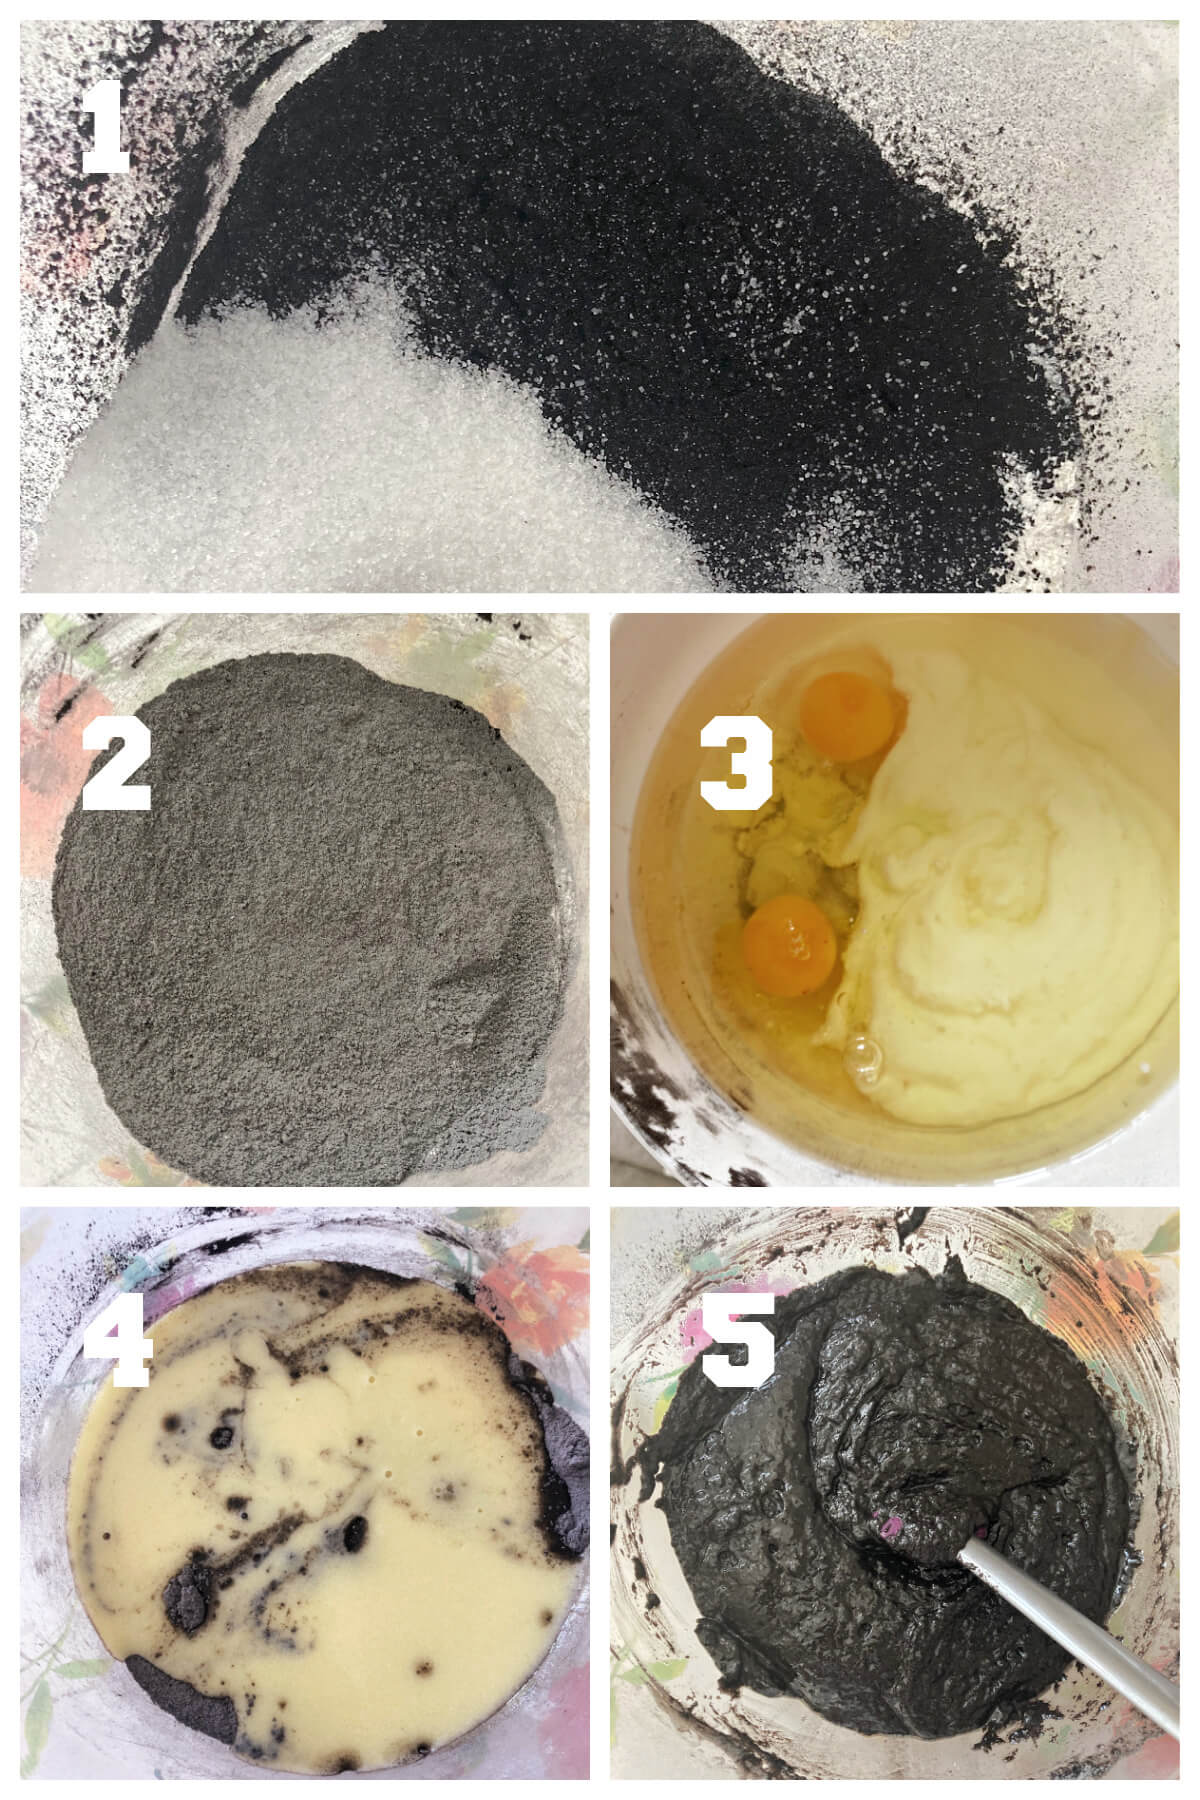 Collage of 5 photos to show how to make a black velvet sponge